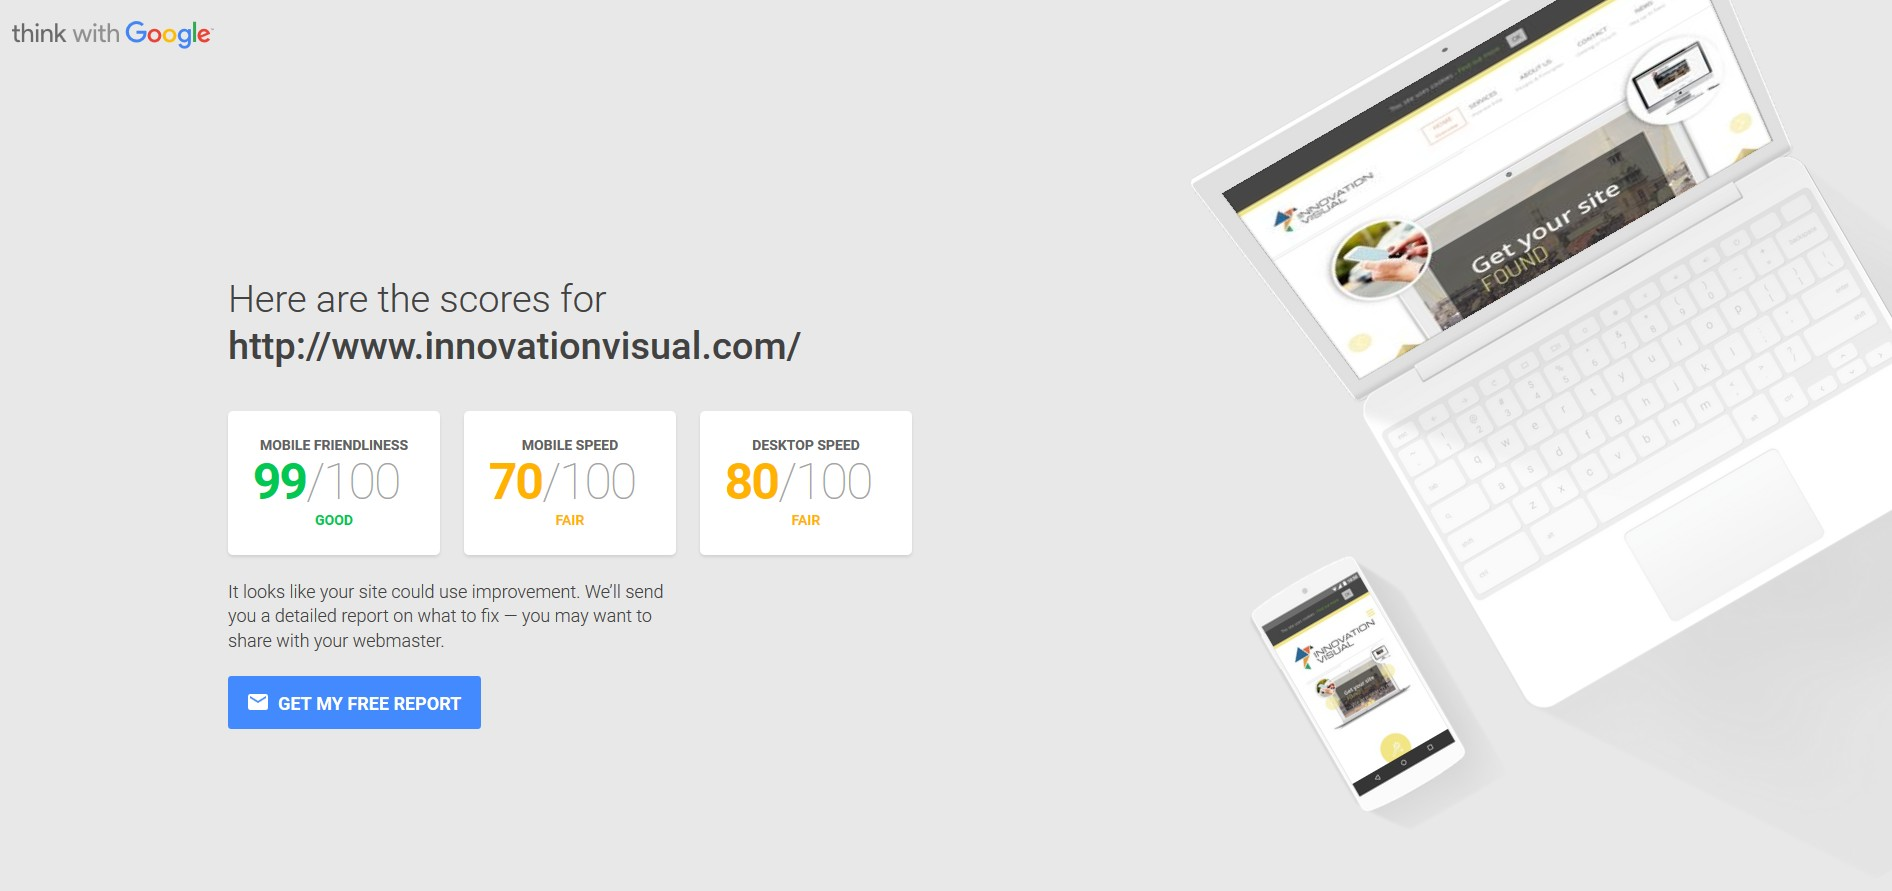 innovation visual website - mobile and speed insights from think with google test tool